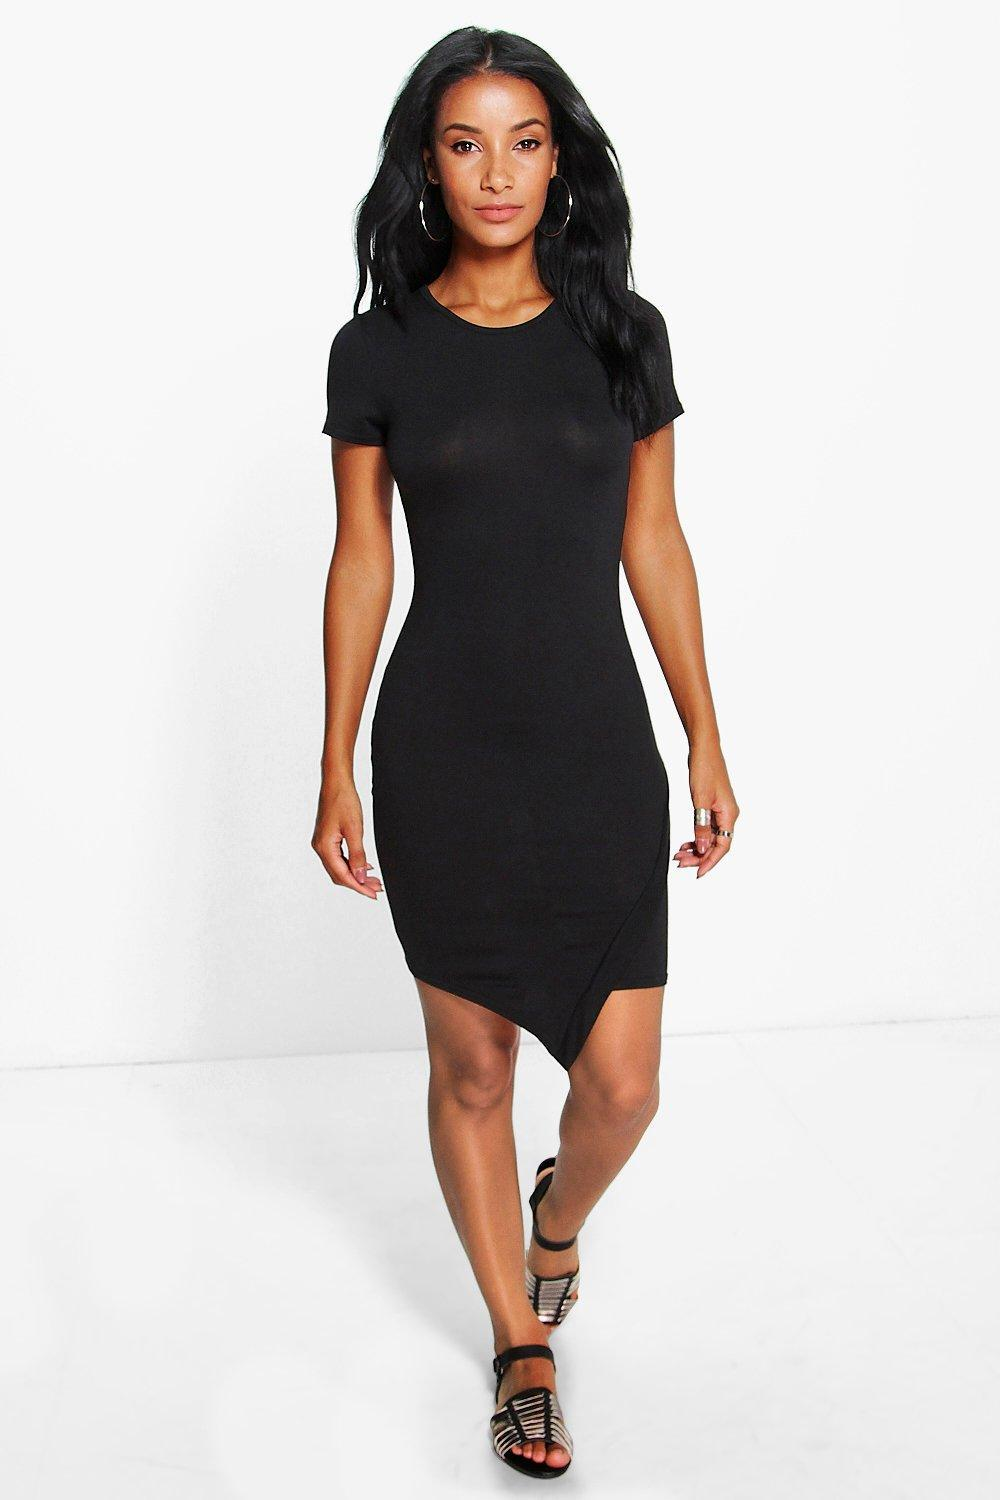 Asymetic Bodycon Dress Black - fit: tight; pattern: plain; style: bodycon; predominant colour: black; occasions: evening; length: just above the knee; fibres: viscose/rayon - stretch; neckline: crew; sleeve length: short sleeve; sleeve style: standard; texture group: jersey - clingy; pattern type: fabric; season: s/s 2016; wardrobe: event